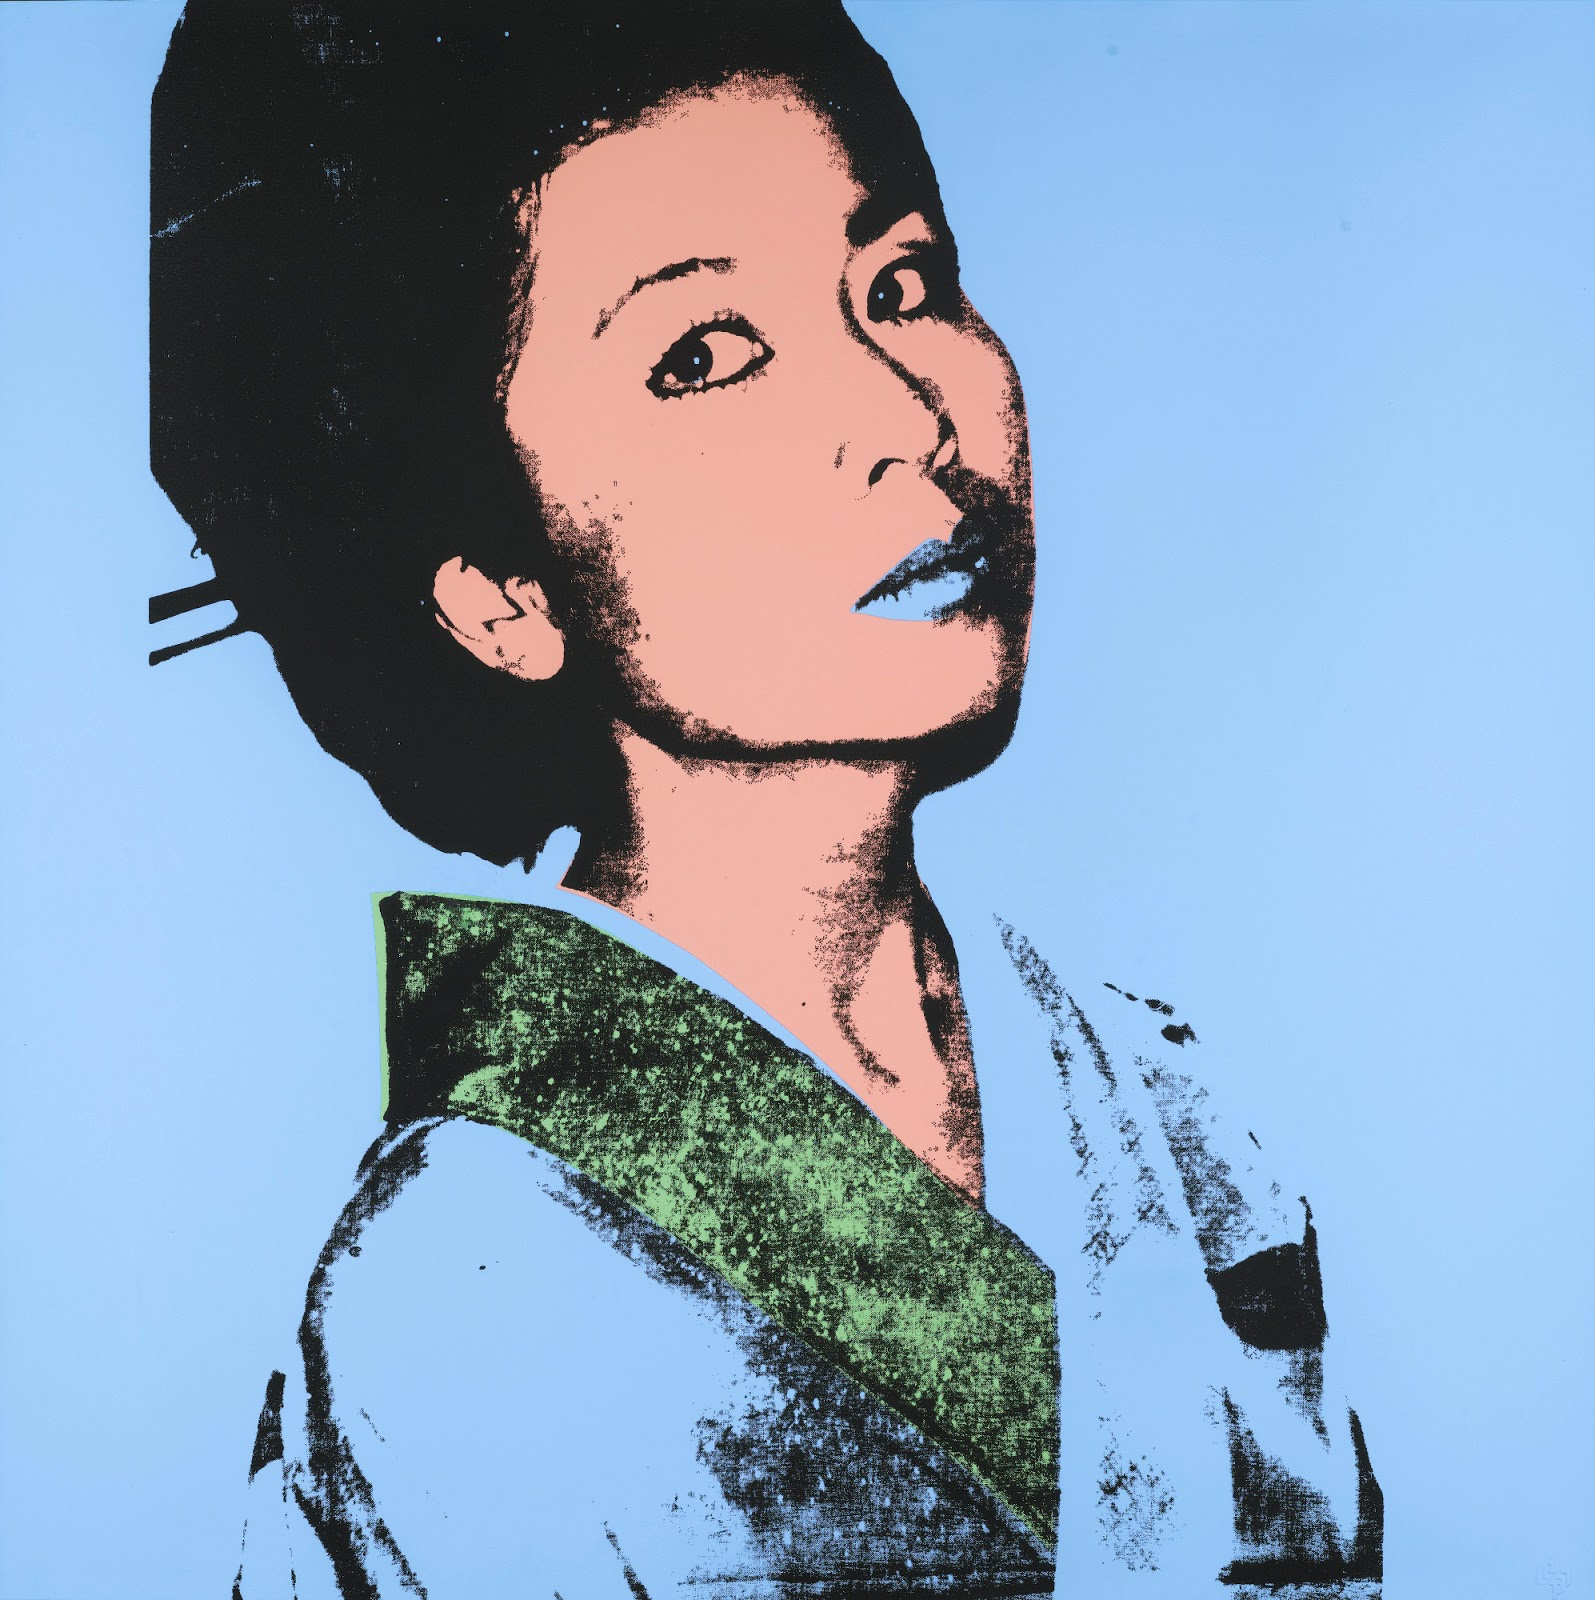 american pop artist andy warhol Learn more about new york city neo-expressionist painter jean-michel basquiat, including his collaboration with pop artist andy warhol in the 1980s and his tragic death, at biographycom.